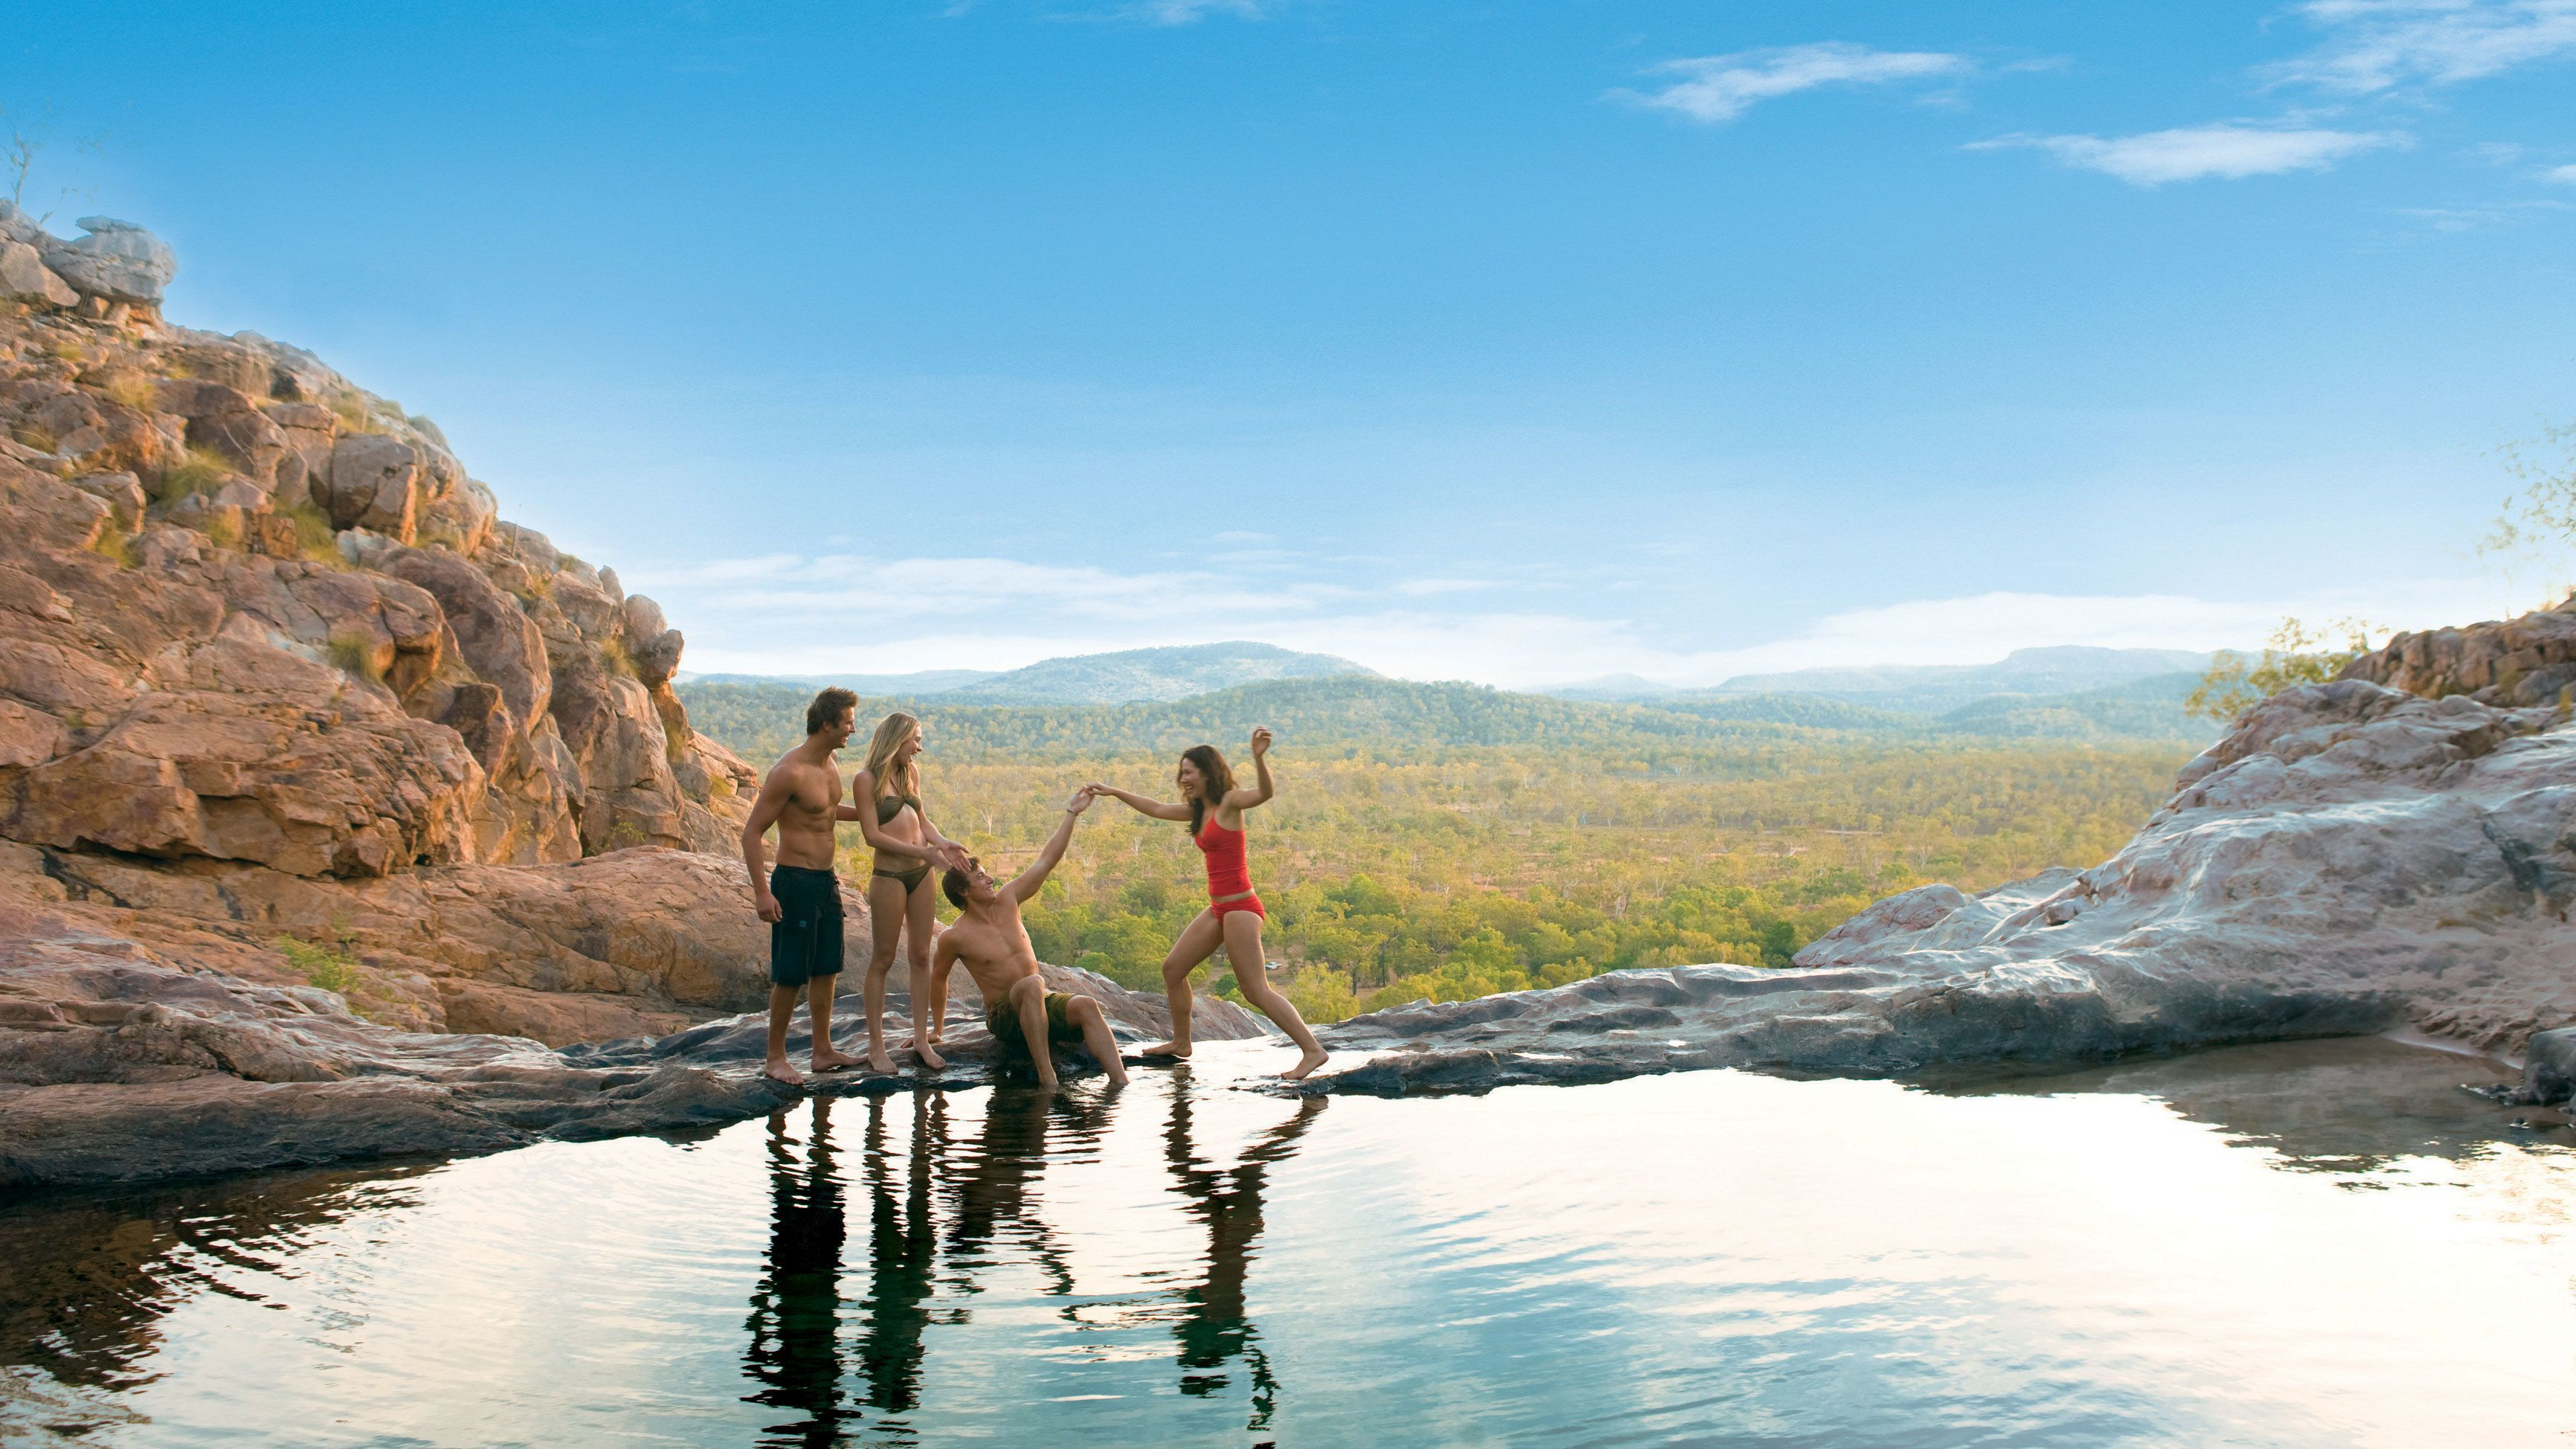 Group on the edge of a natural pool with mountains in the background